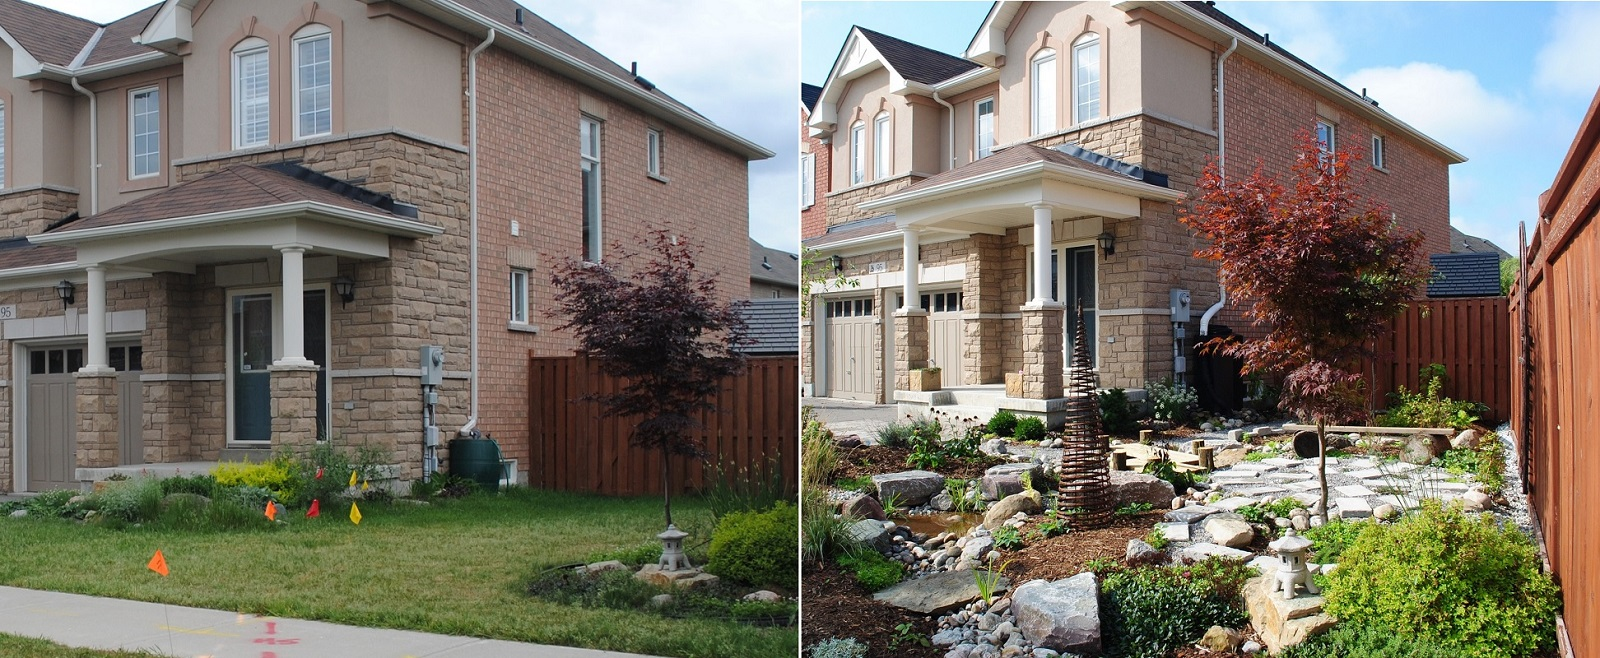 Front Yard Makeover at 95 Wheelwright Drive before and after